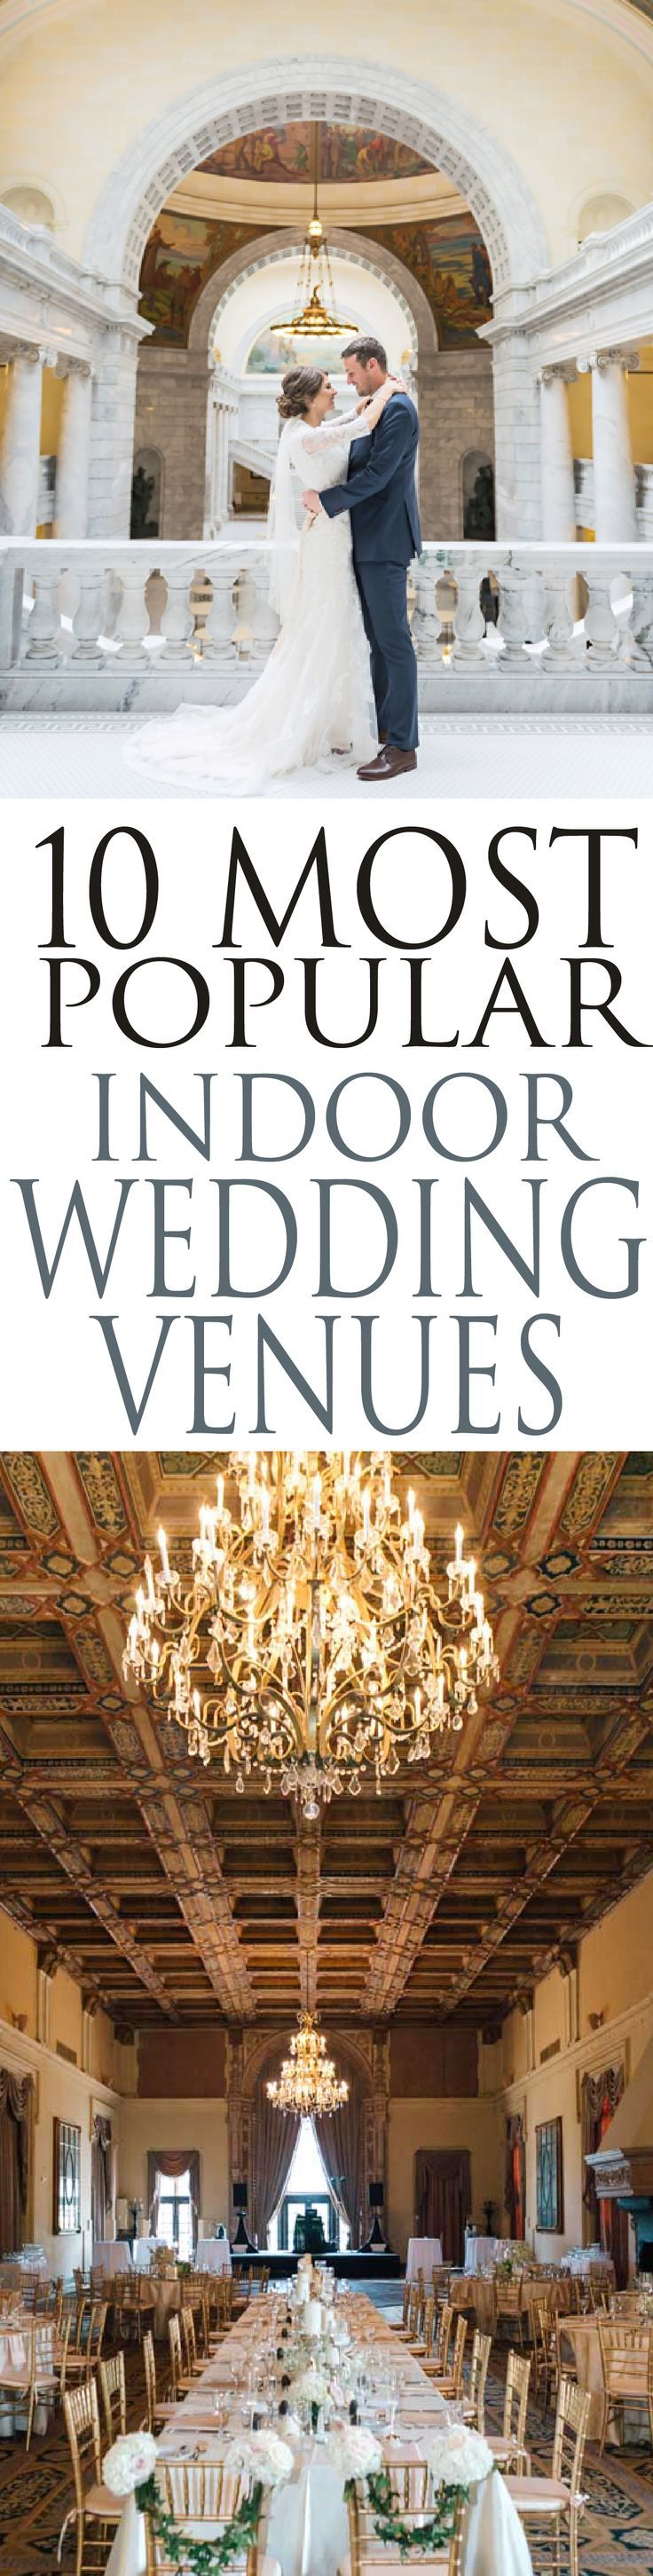 10 Beautiful indoor wedding venues that will make your day ...